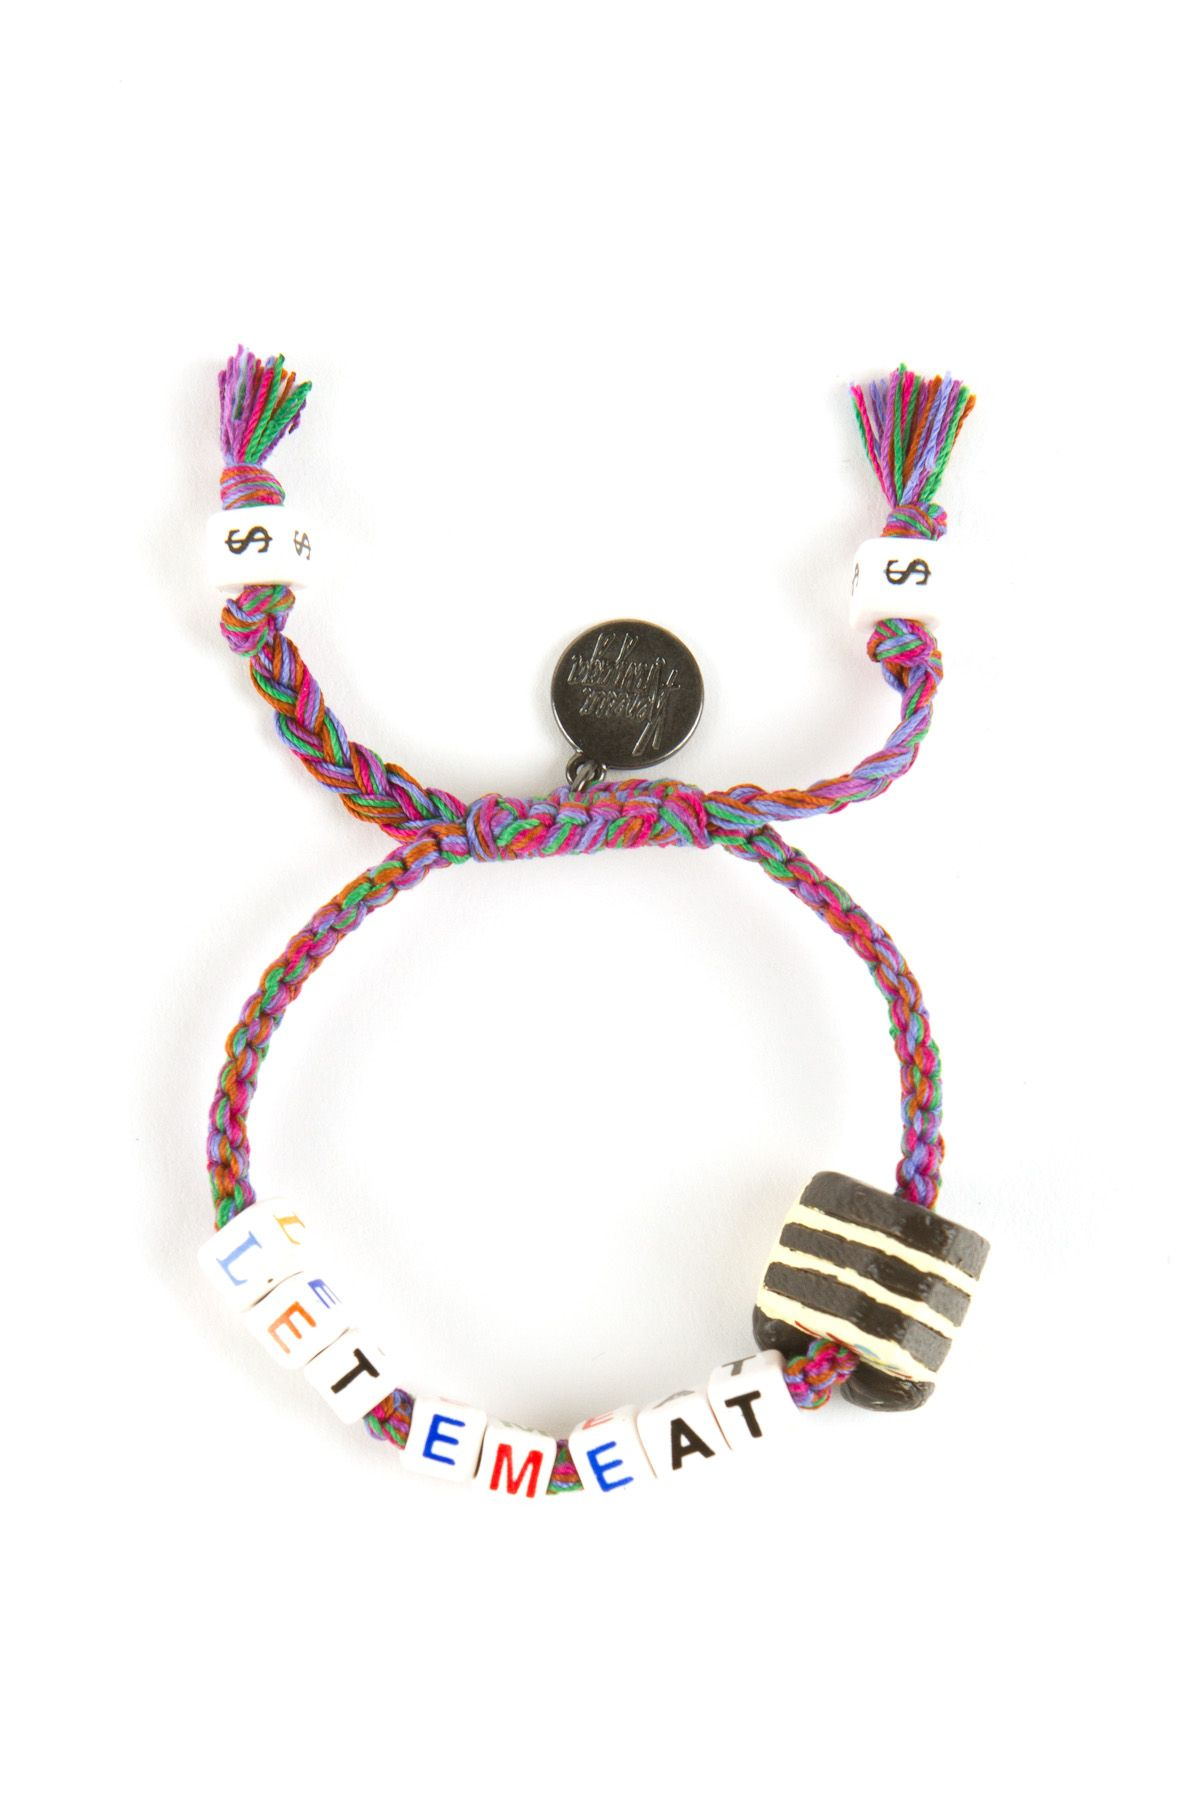 Venessa Arizaga Let 'Em Eat Cake Bracelet - WOMEN - Venessa Arizaga - OPENING CEREMONY